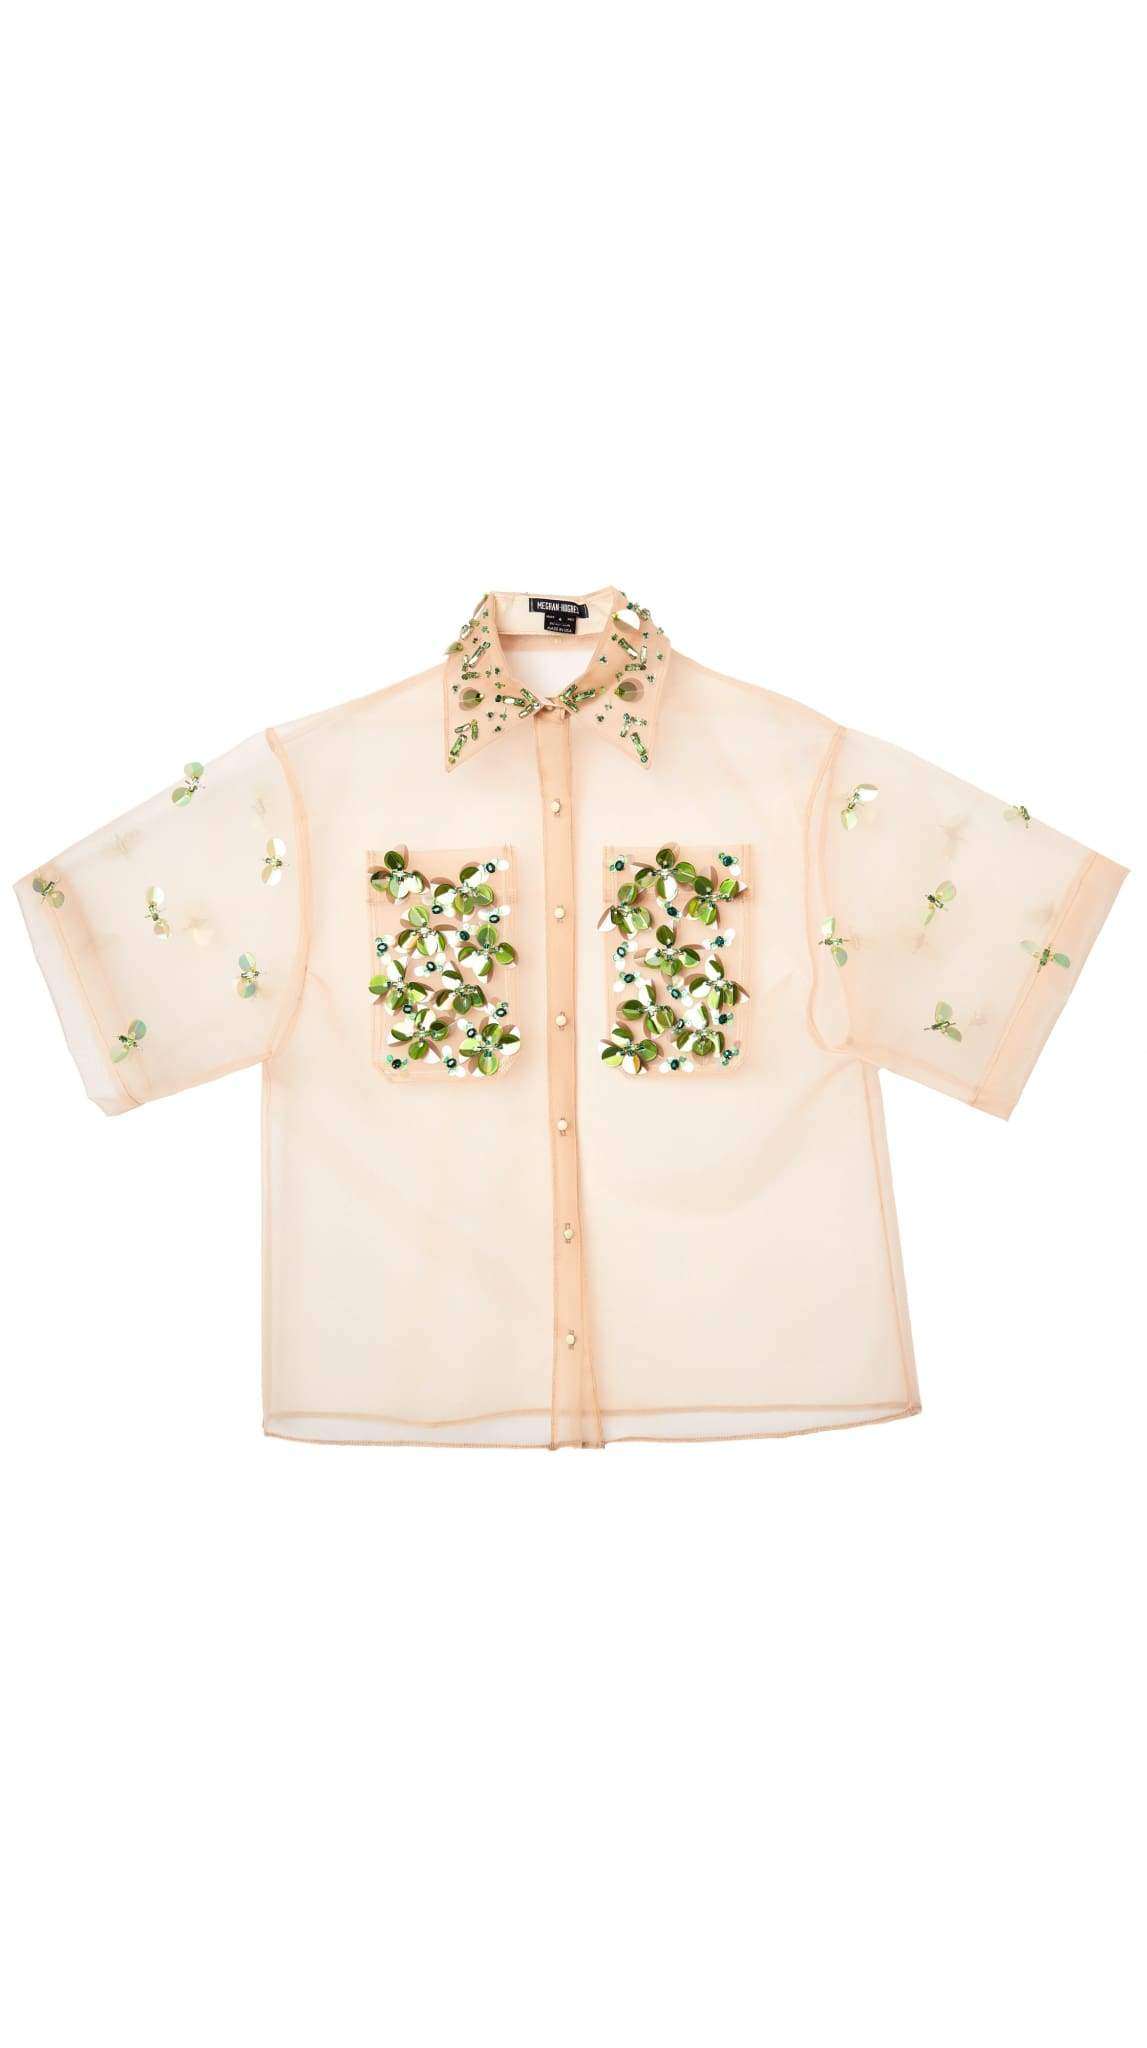 Embellished Bejeweled Oversized Beige Nude Button-Down by Meghan Hughes | Nineteenth Amendm...